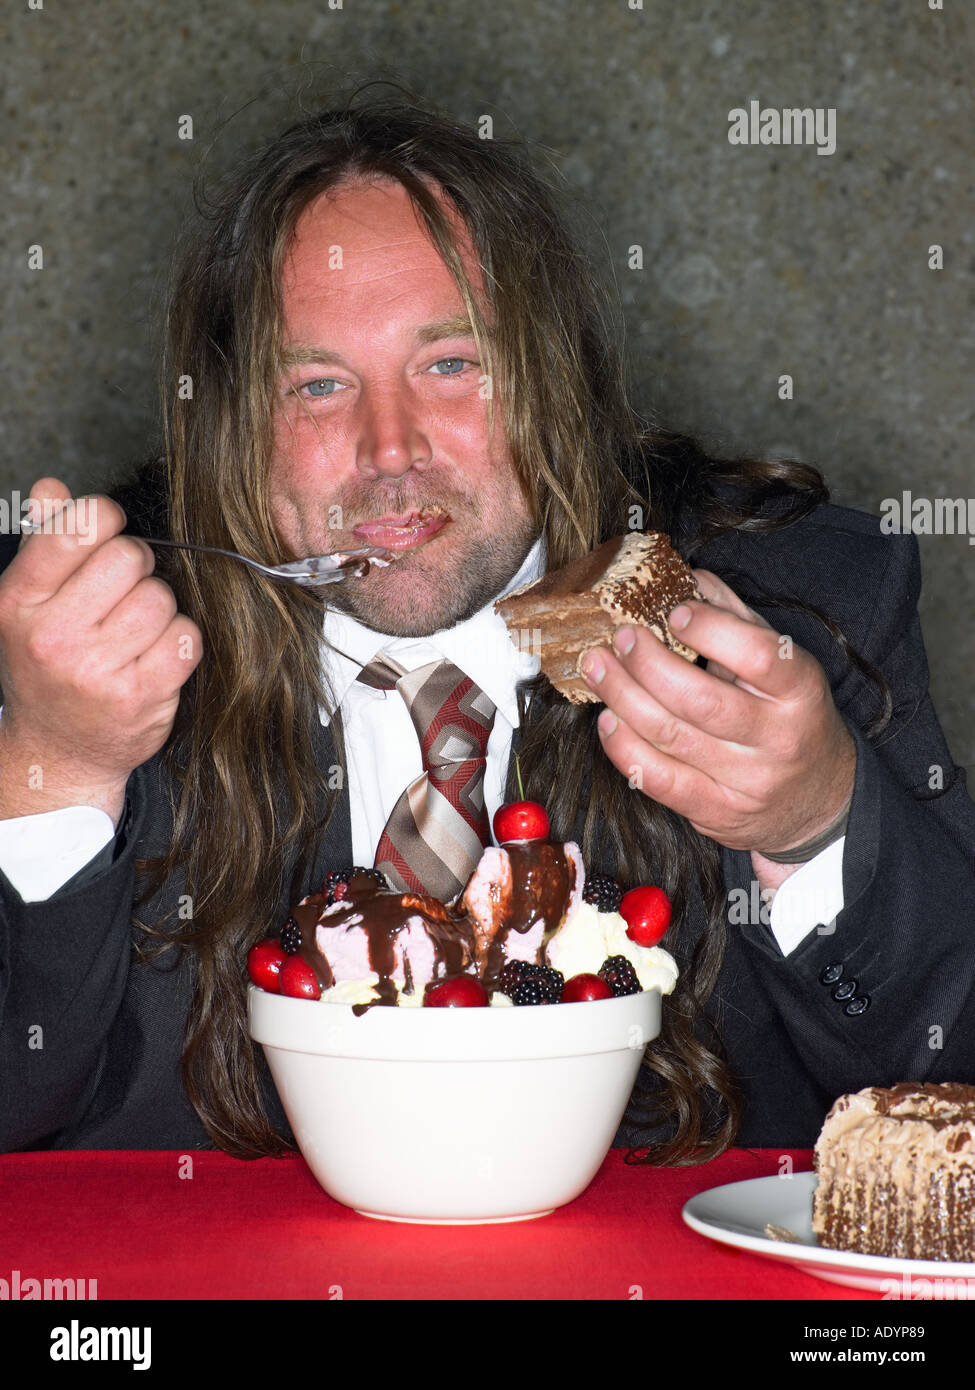 Long haired fat man eating stuffing himself with ice cream - Stock Image